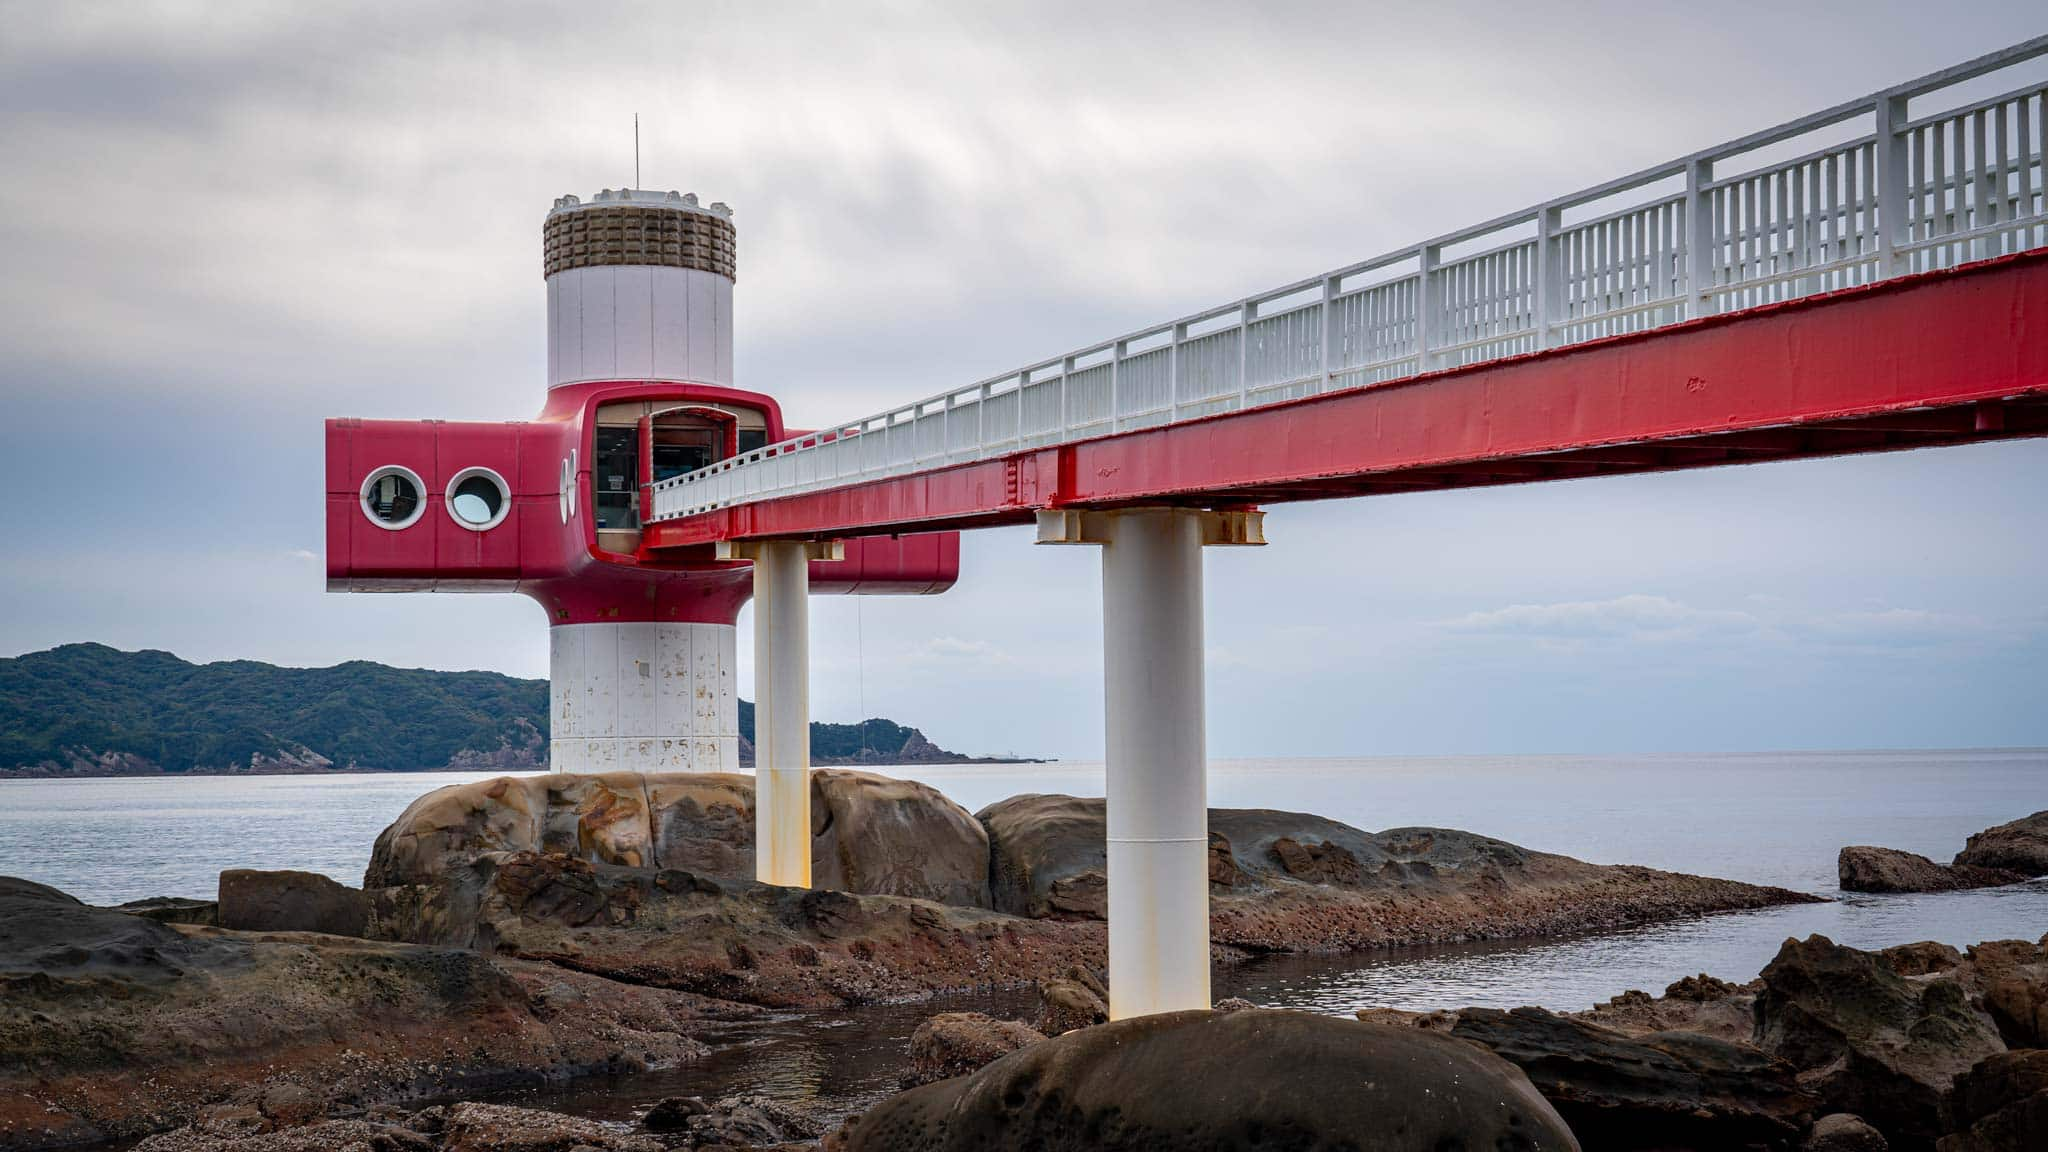 The red and white underwater observatory is quite unique